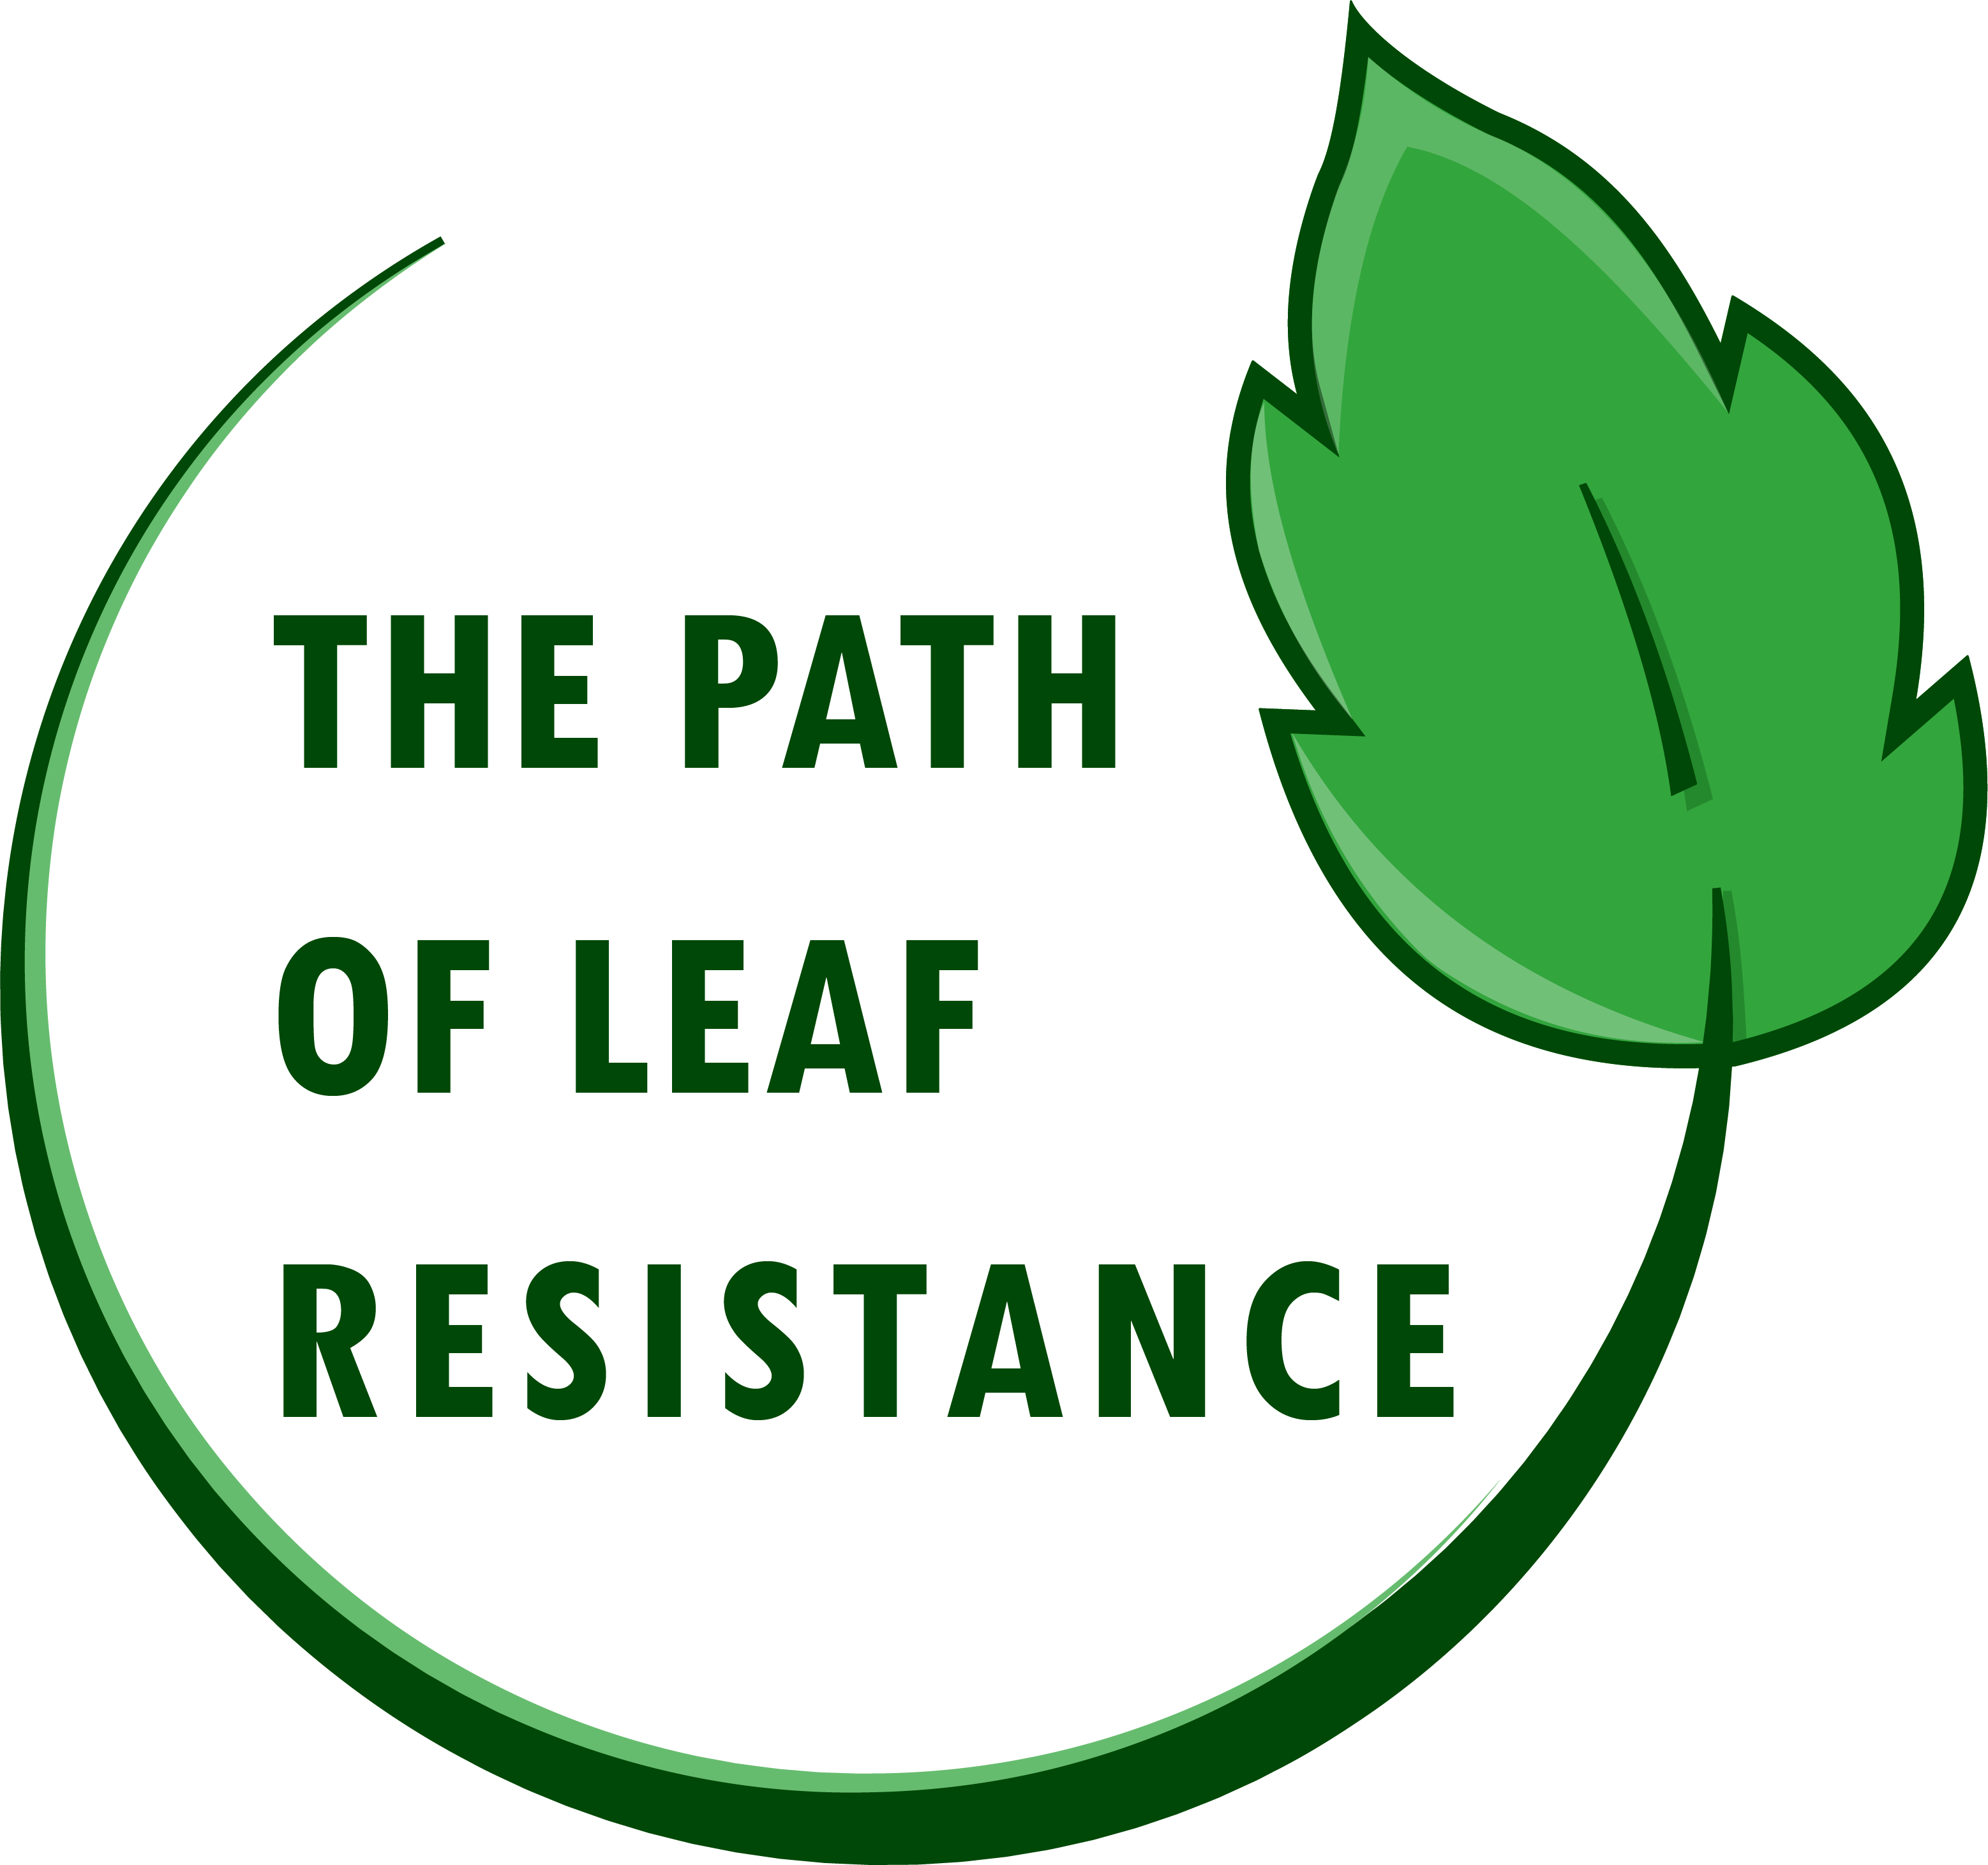 The Path of Leaf Resistance logo